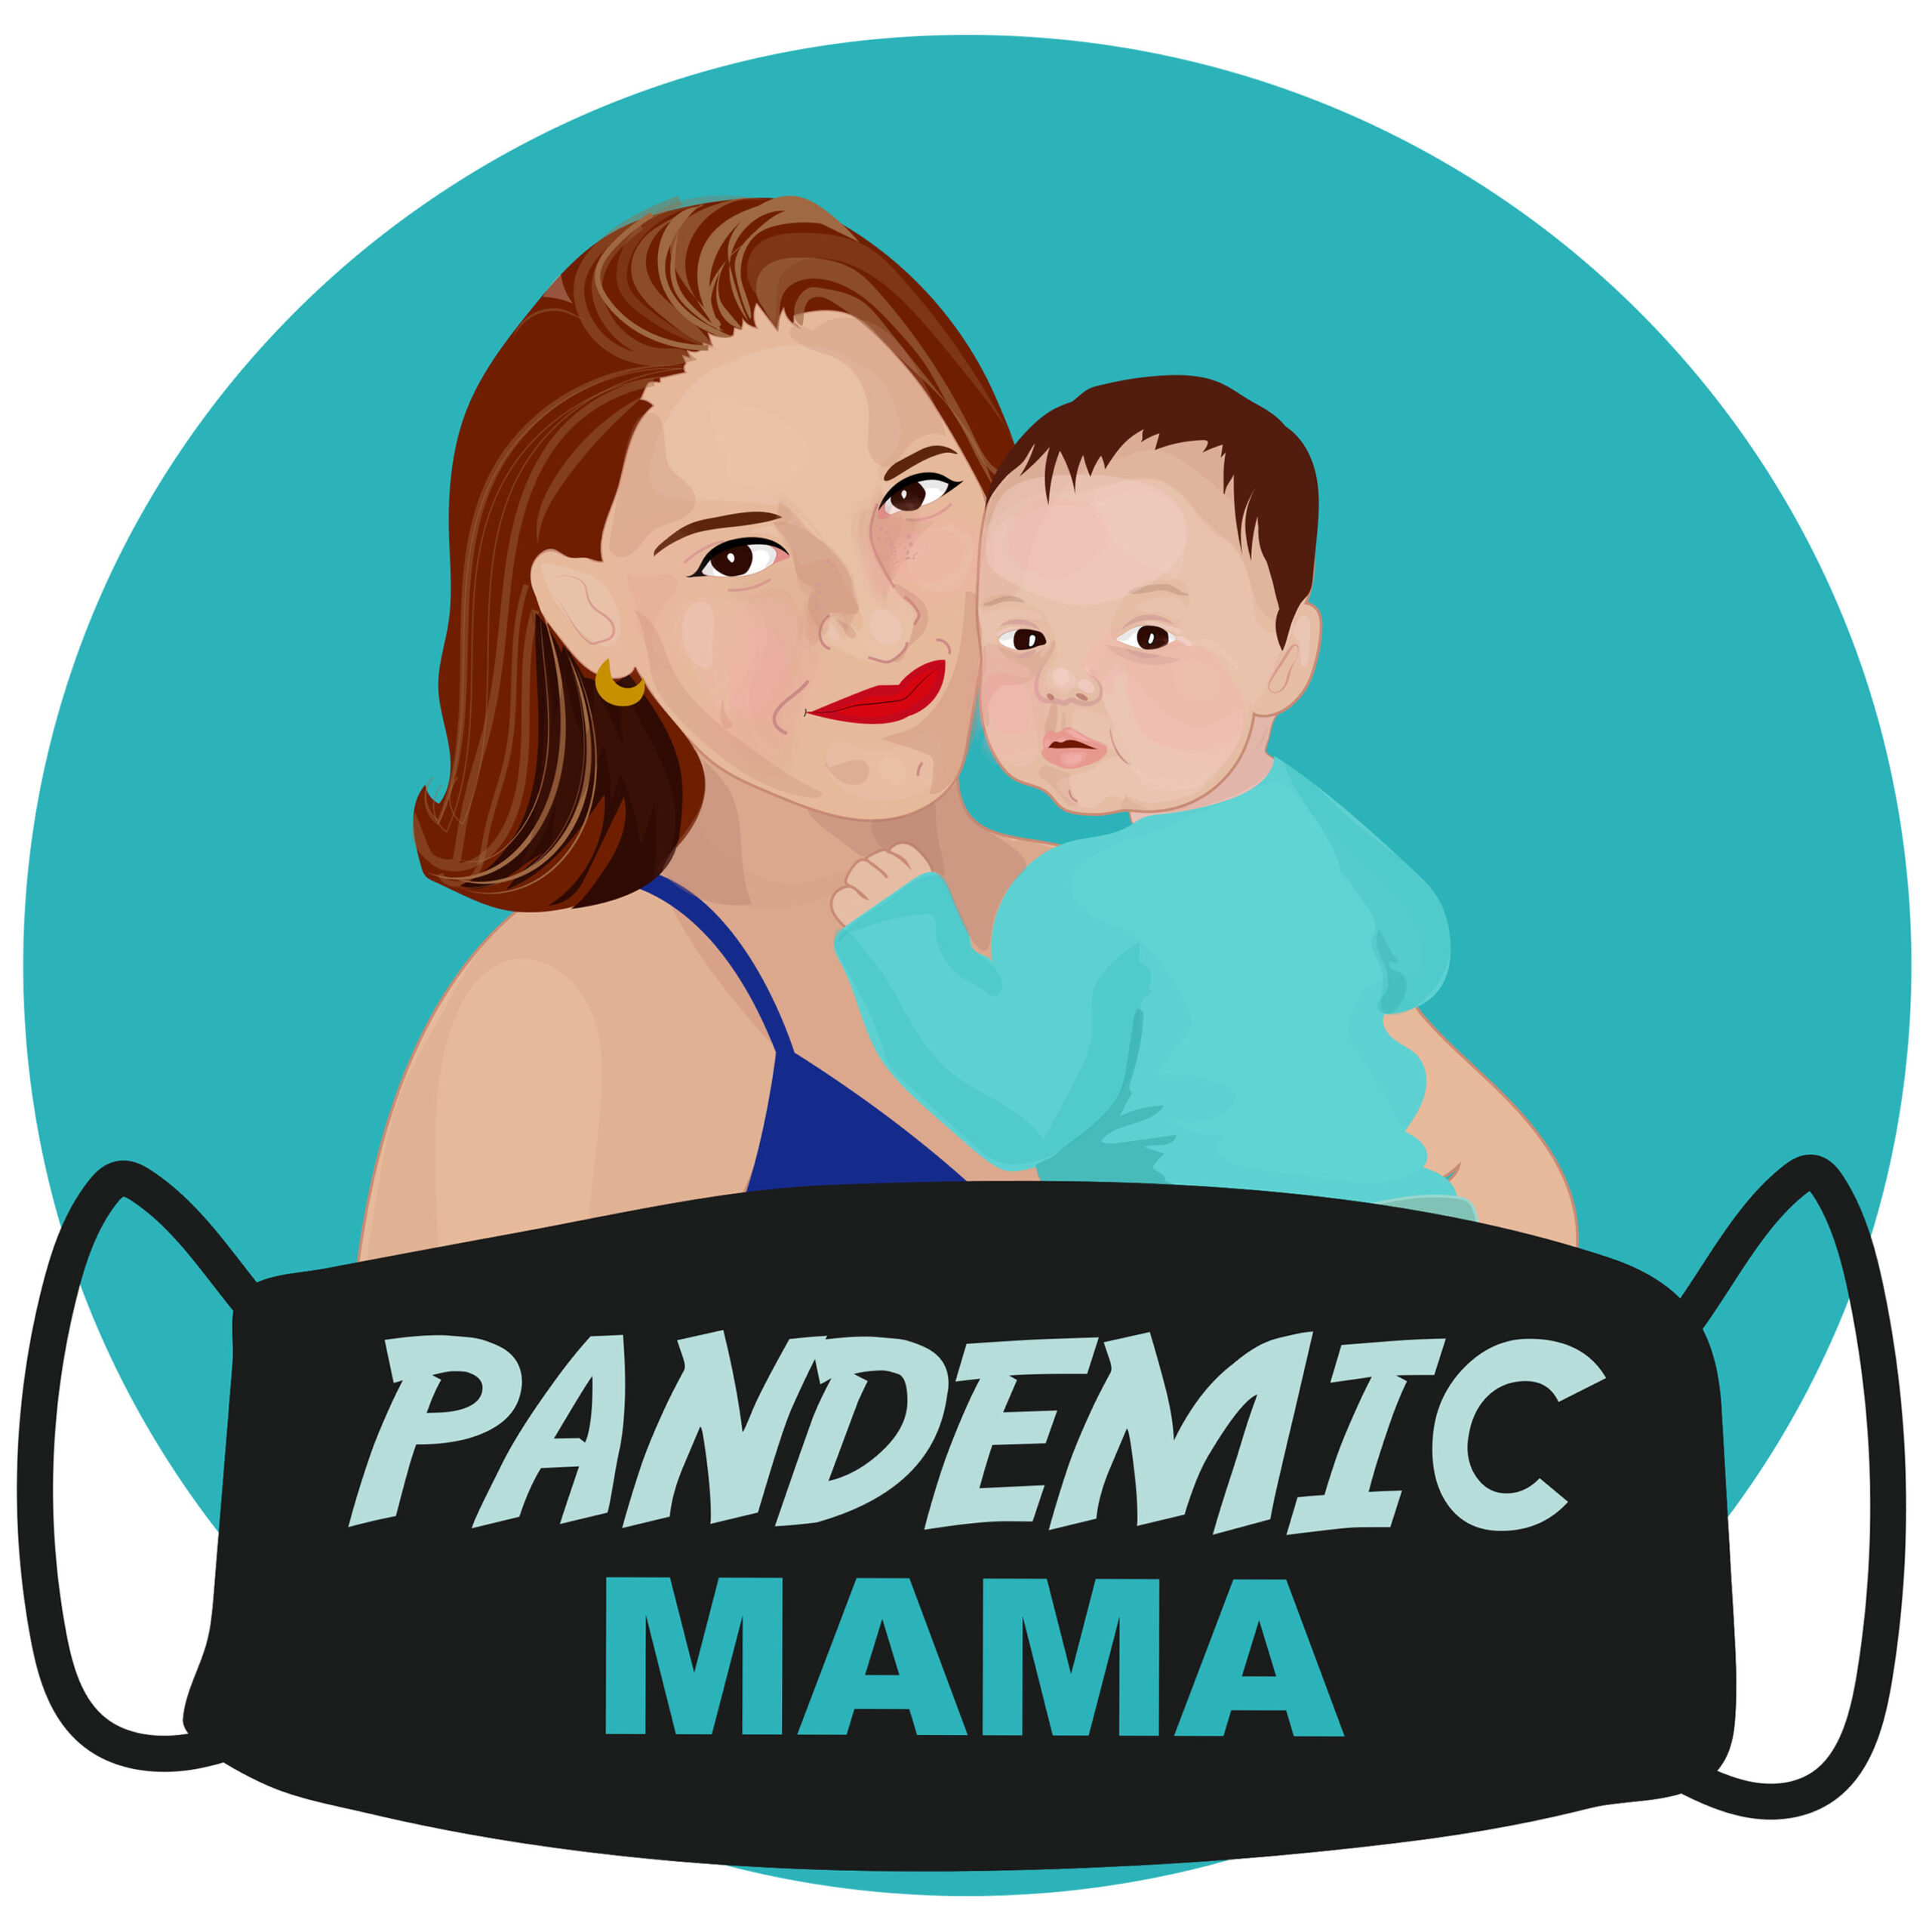 Pandemic Mama Podcast – Coming on September 30th!